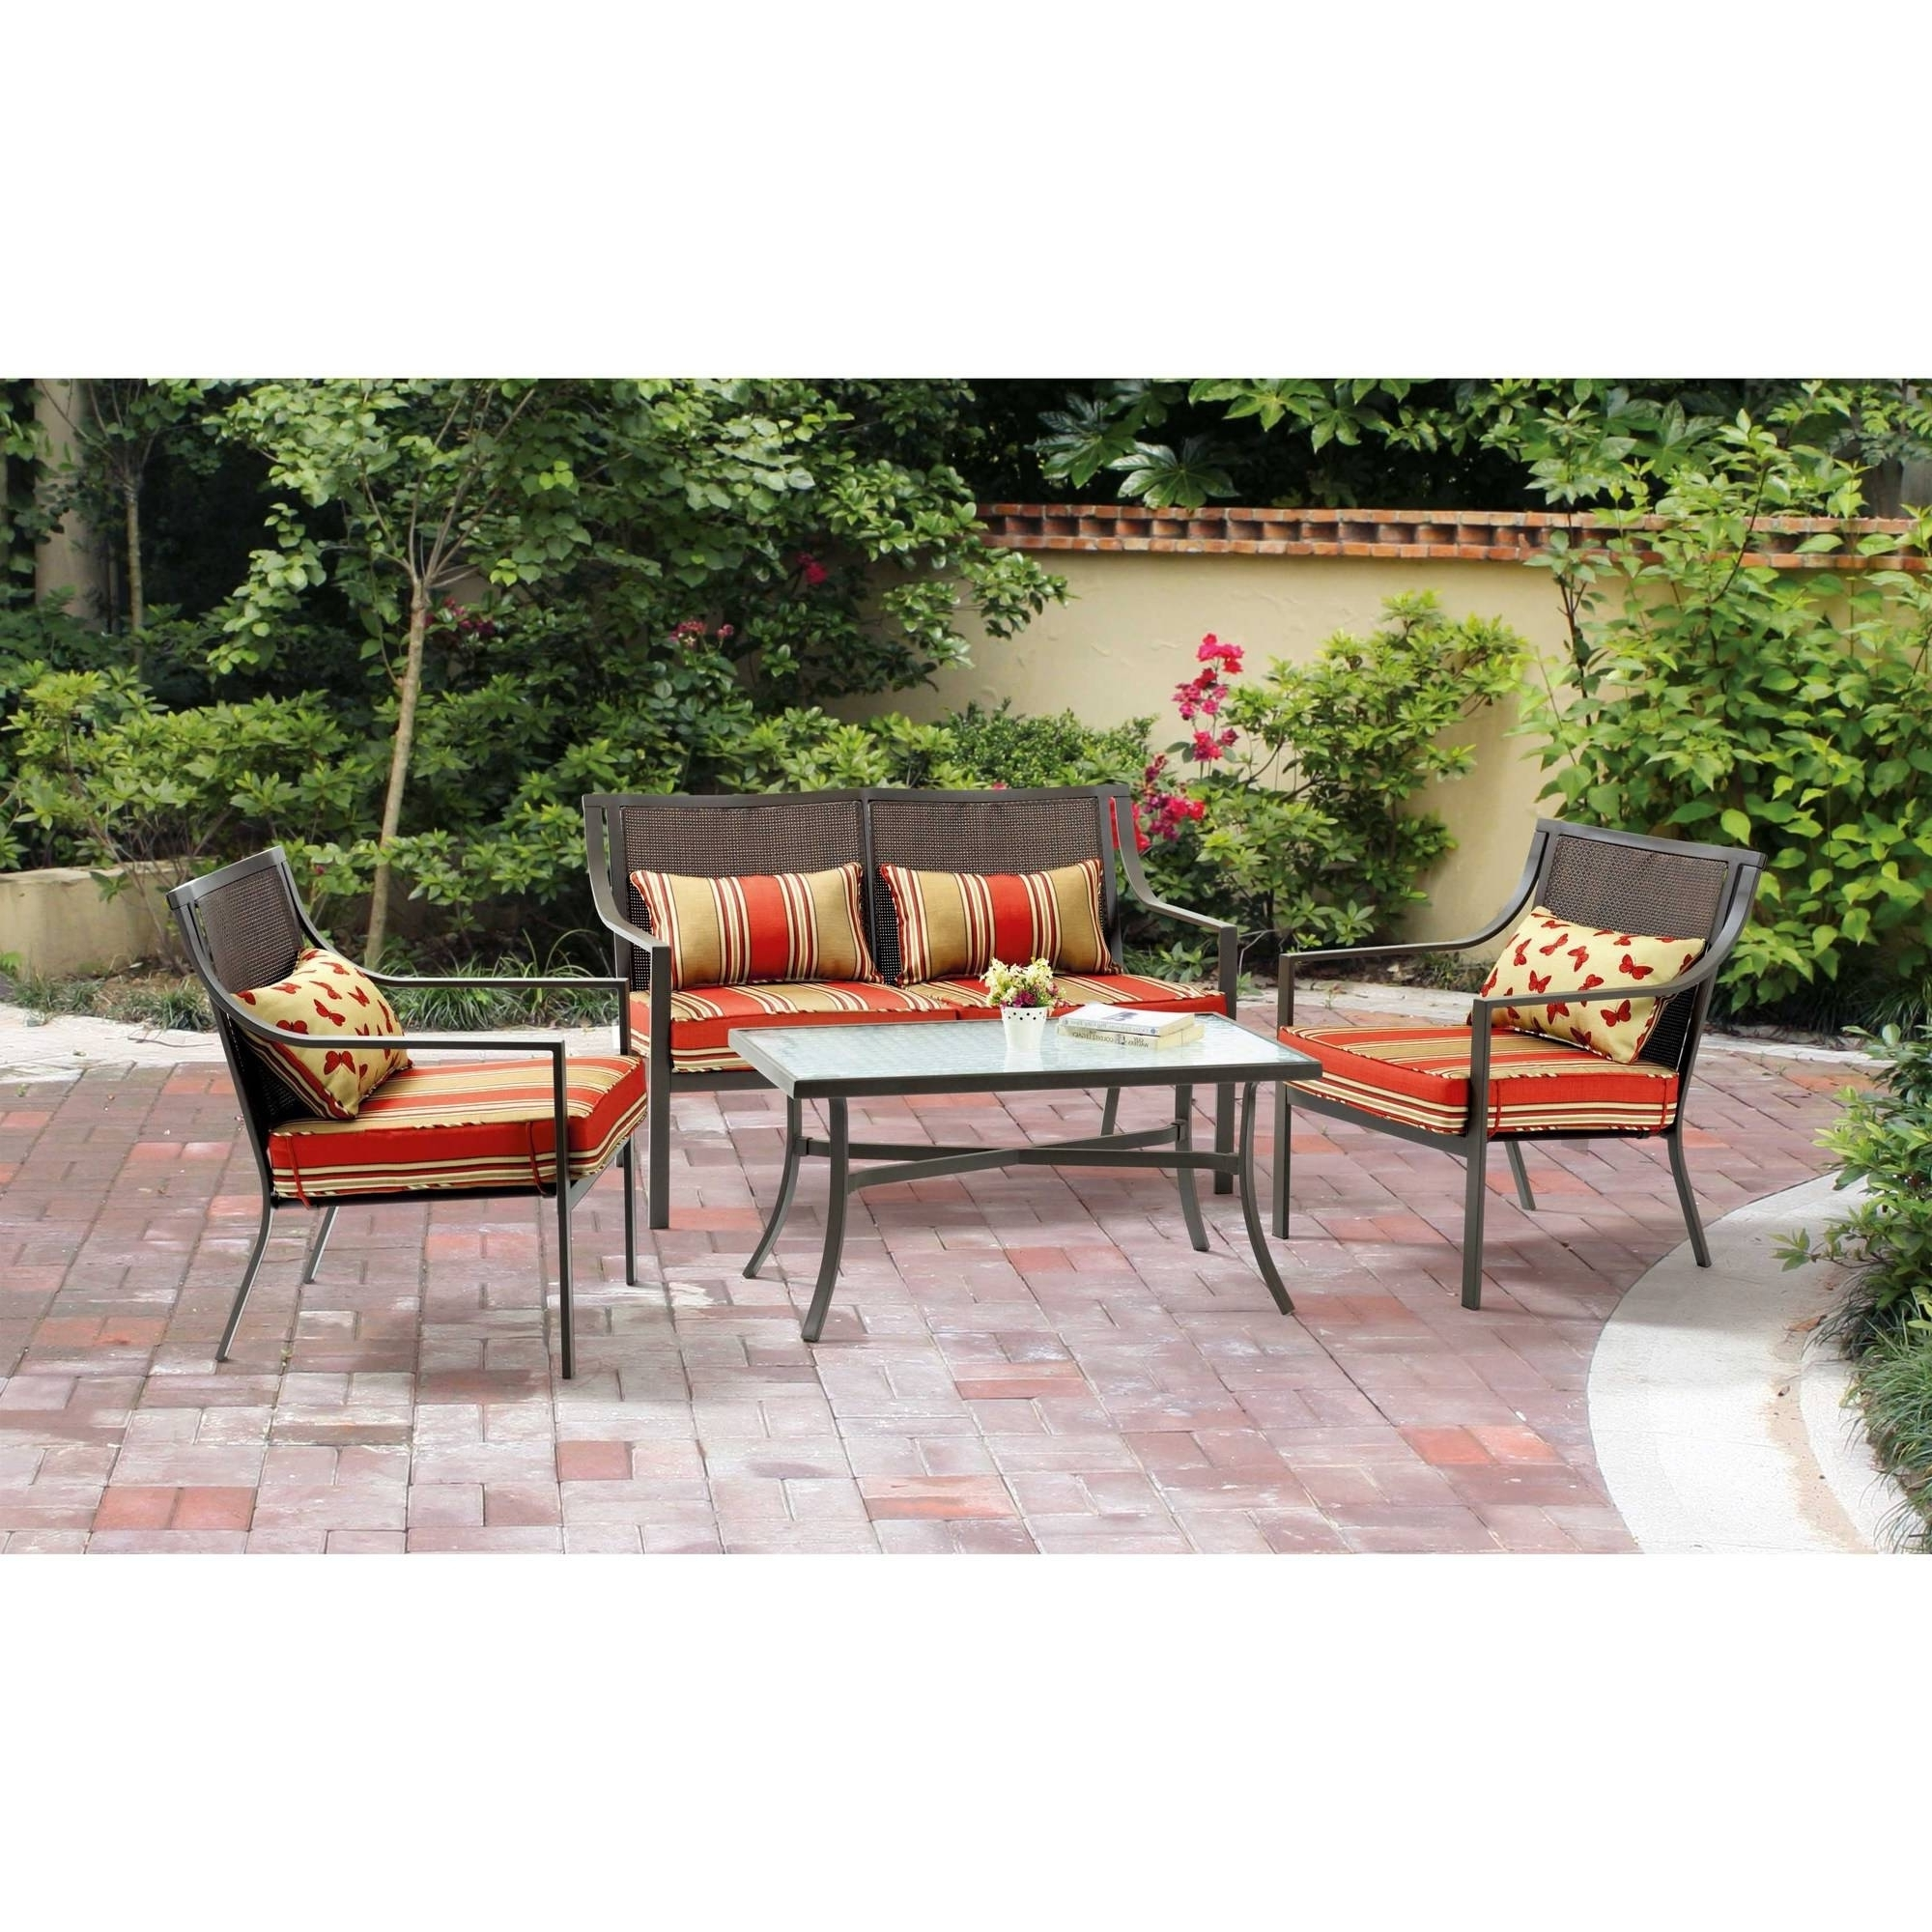 How To Make Patio Furniture Sets — The Home Redesign For Recent Nfm Patio Conversation Sets (View 9 of 15)